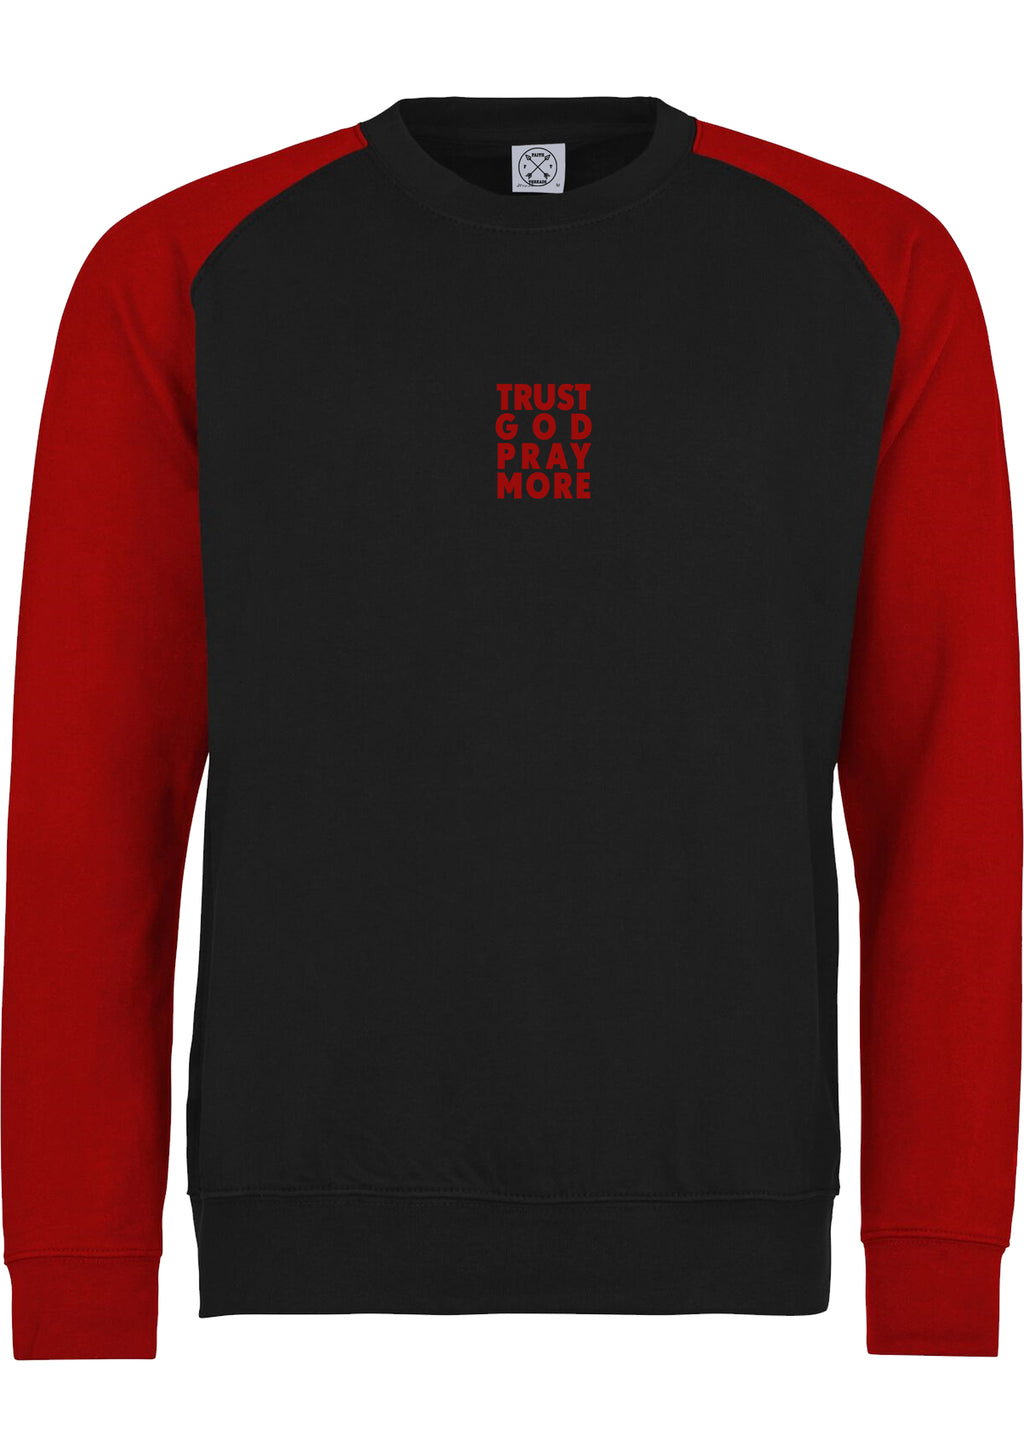 Unisex TRUST GOD Baseball Sweatshirt (Black Red)